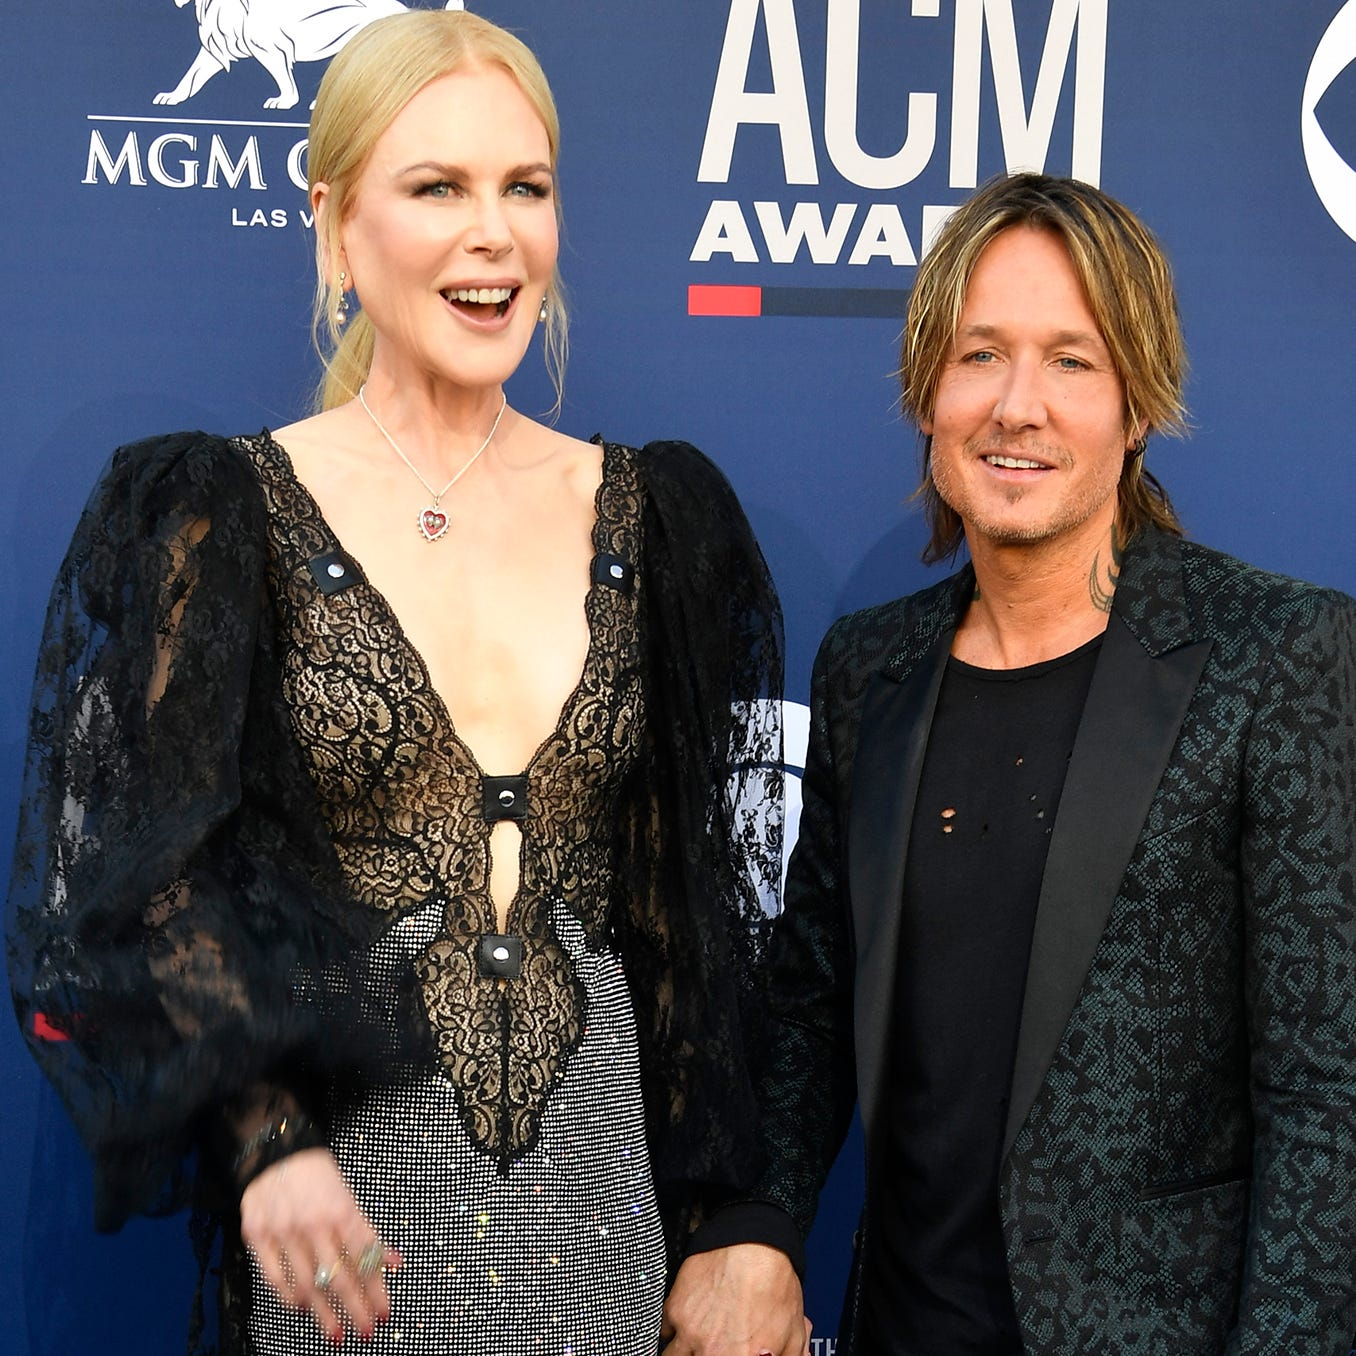 ACM Awards: Keith Urban unveils new 'Burden,' says song 'stopped him in his tracks'